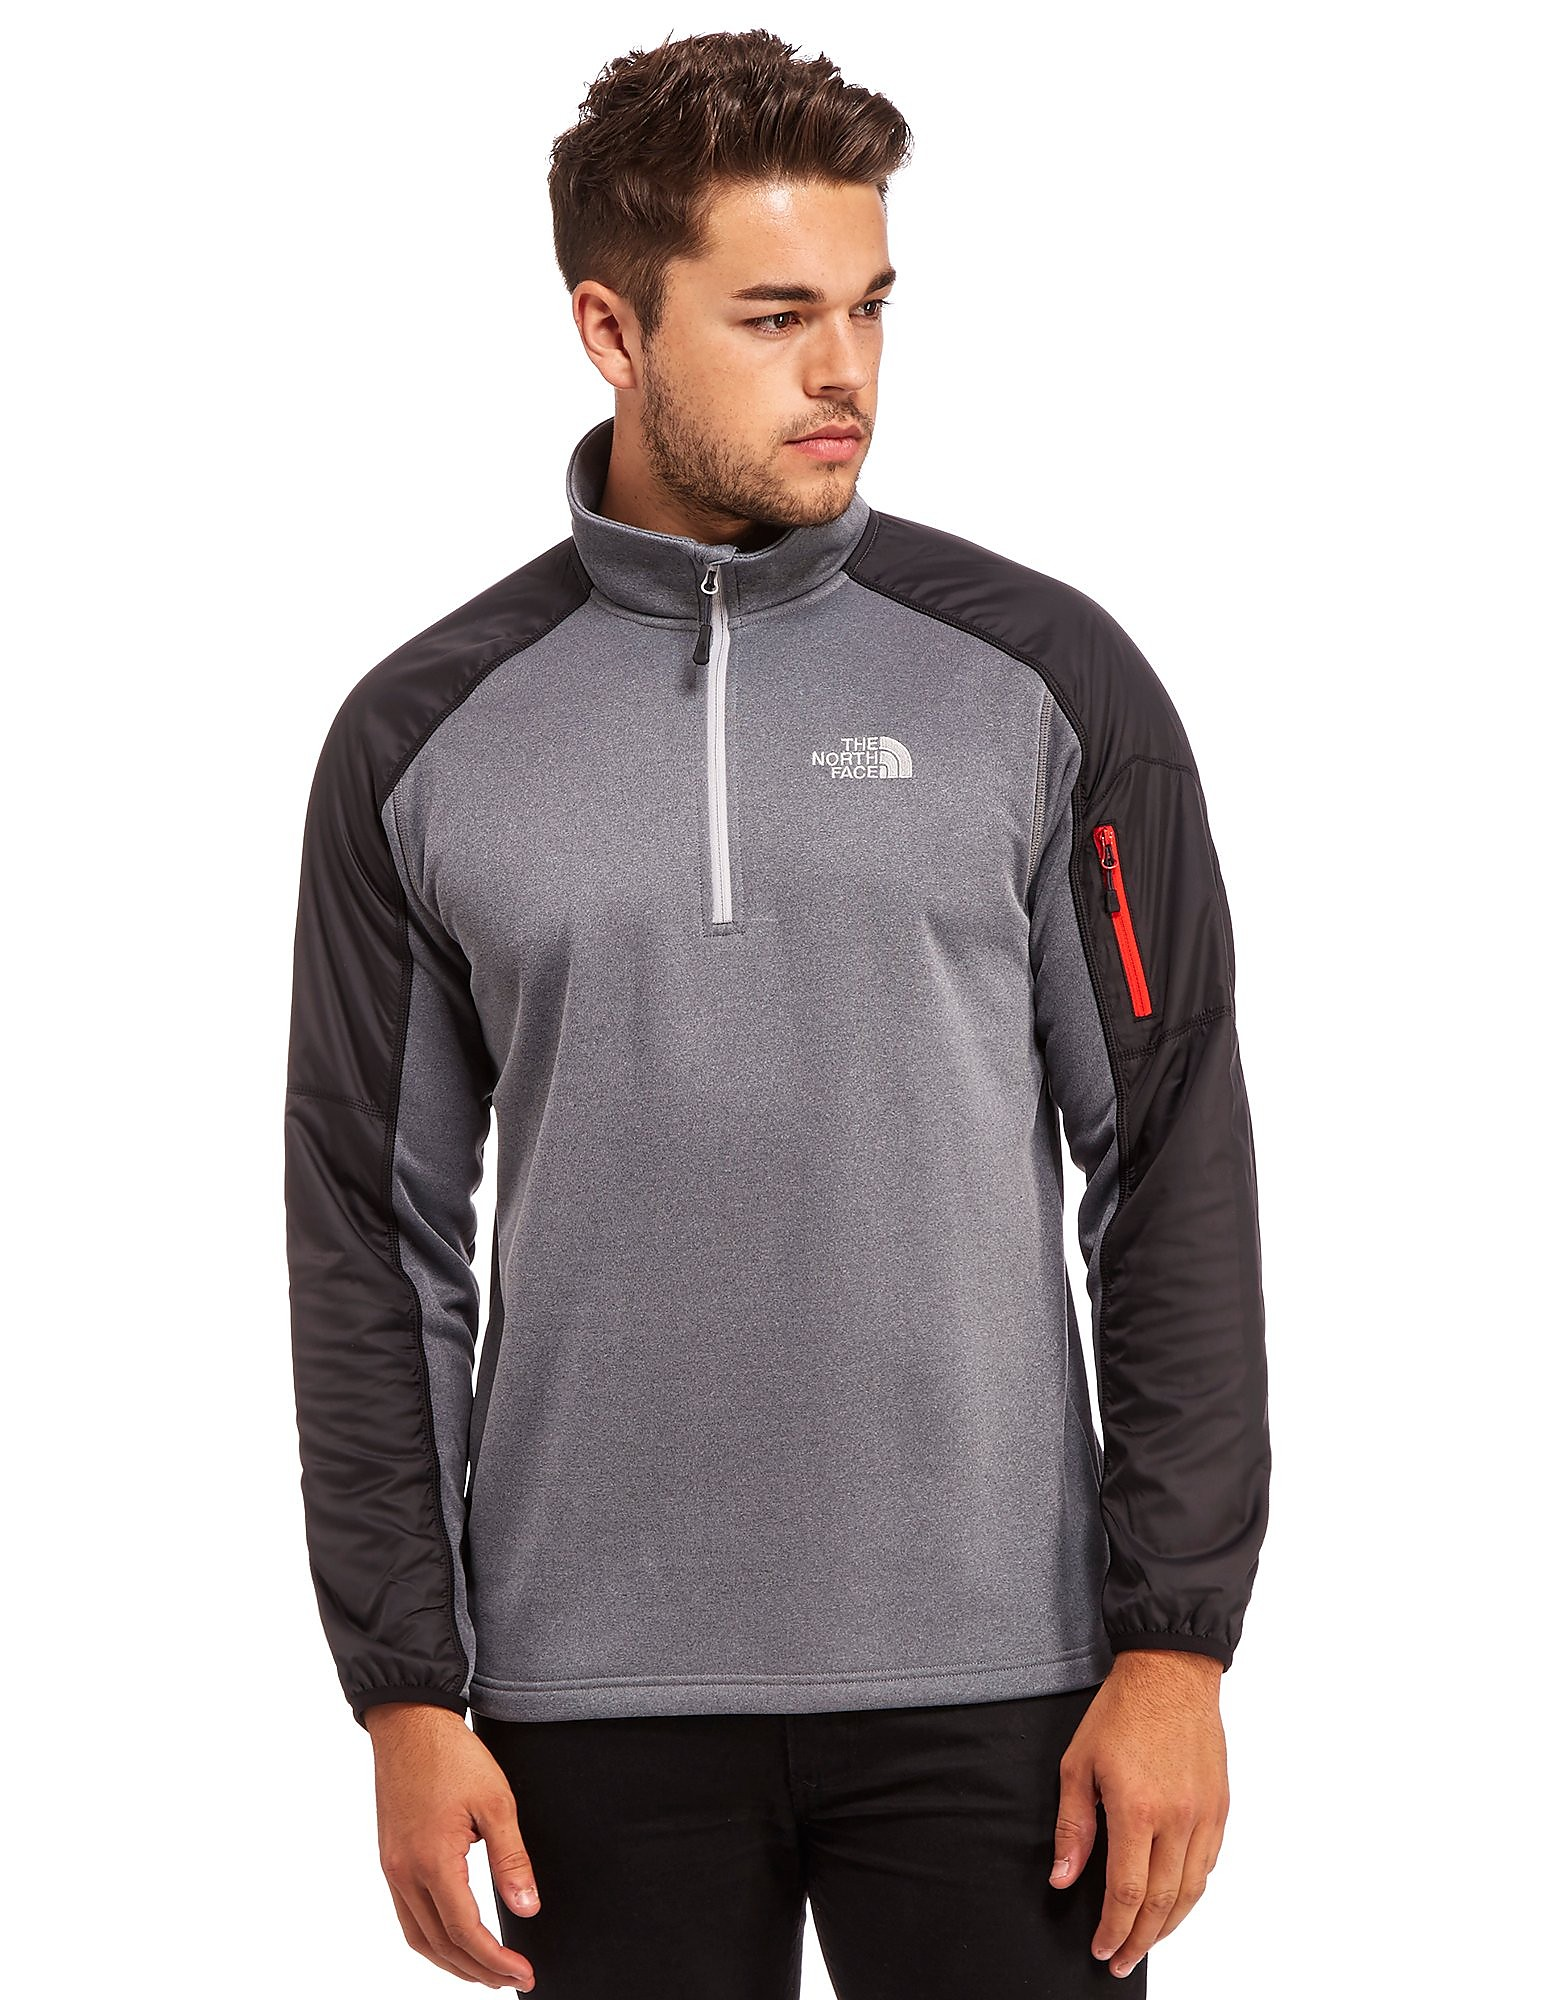 The North Face Tech Delta Top